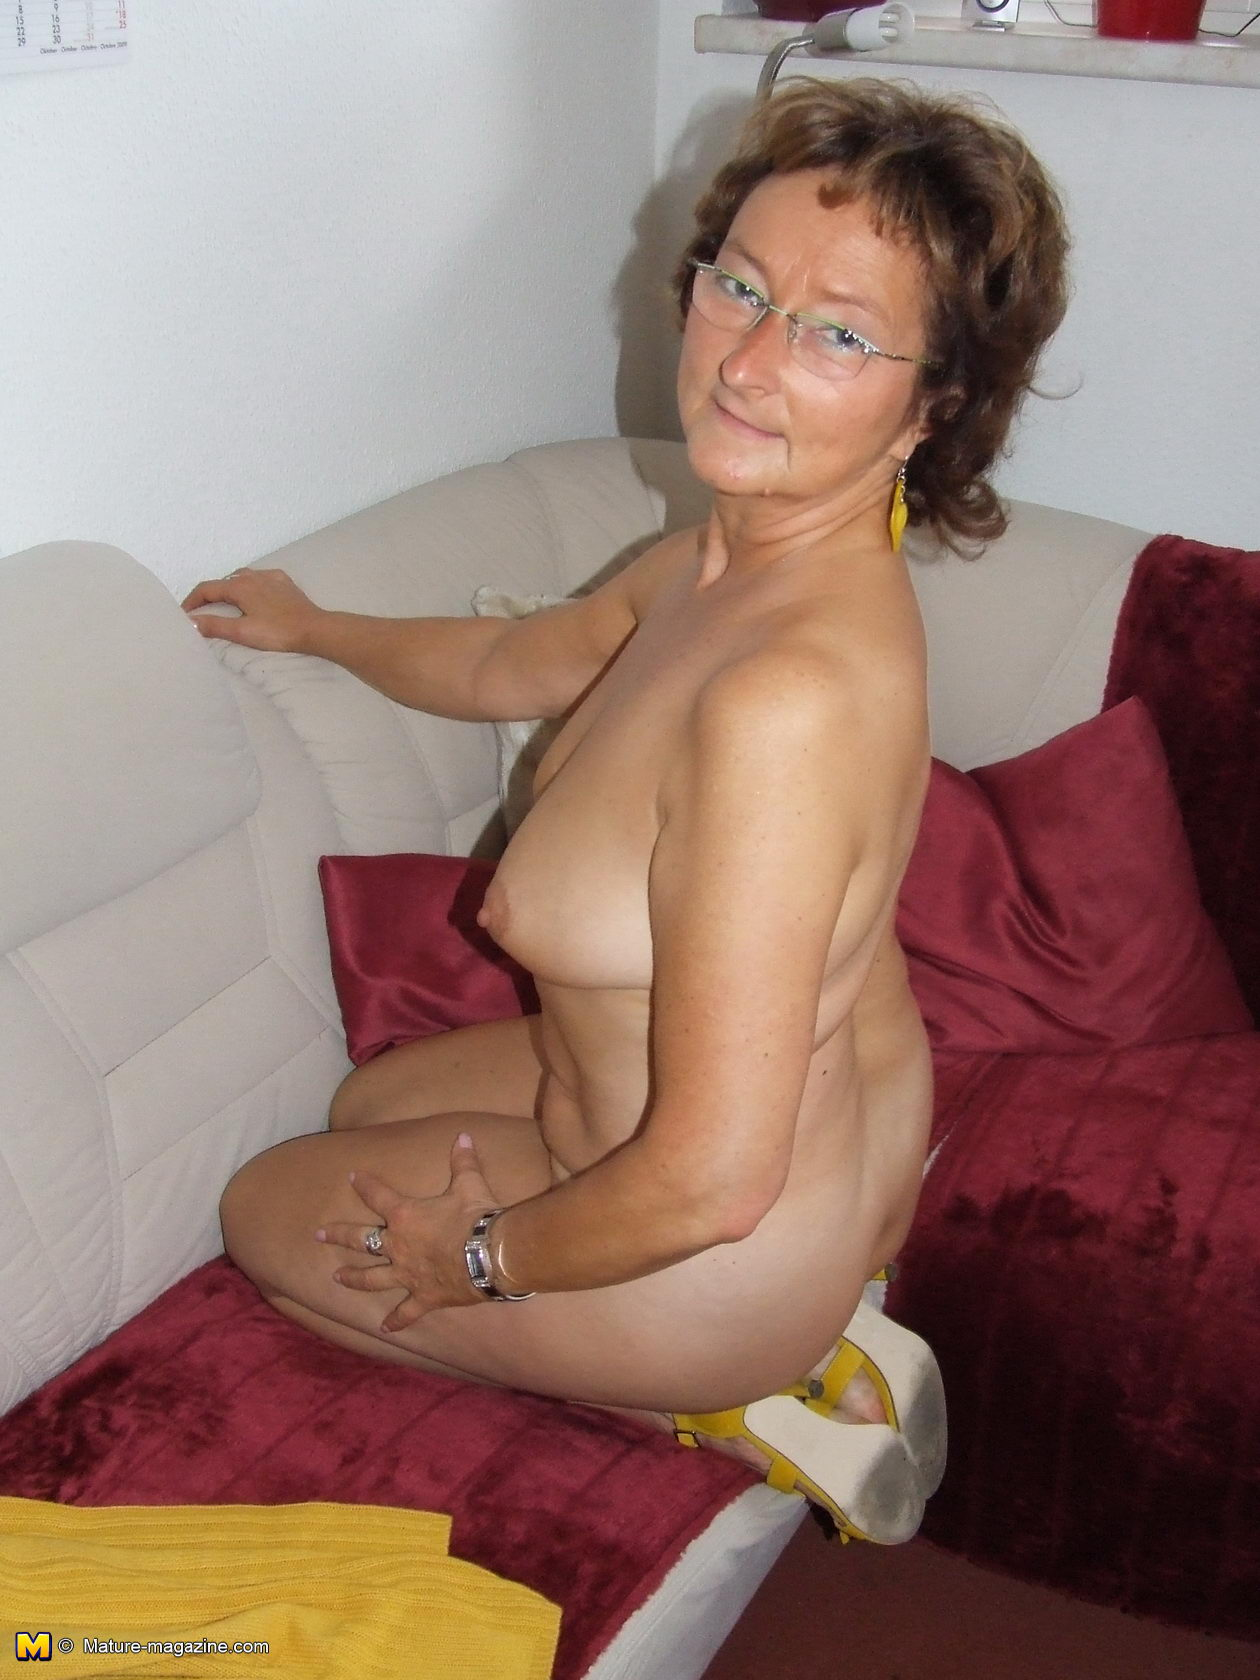 Very Naked hairy amature mom